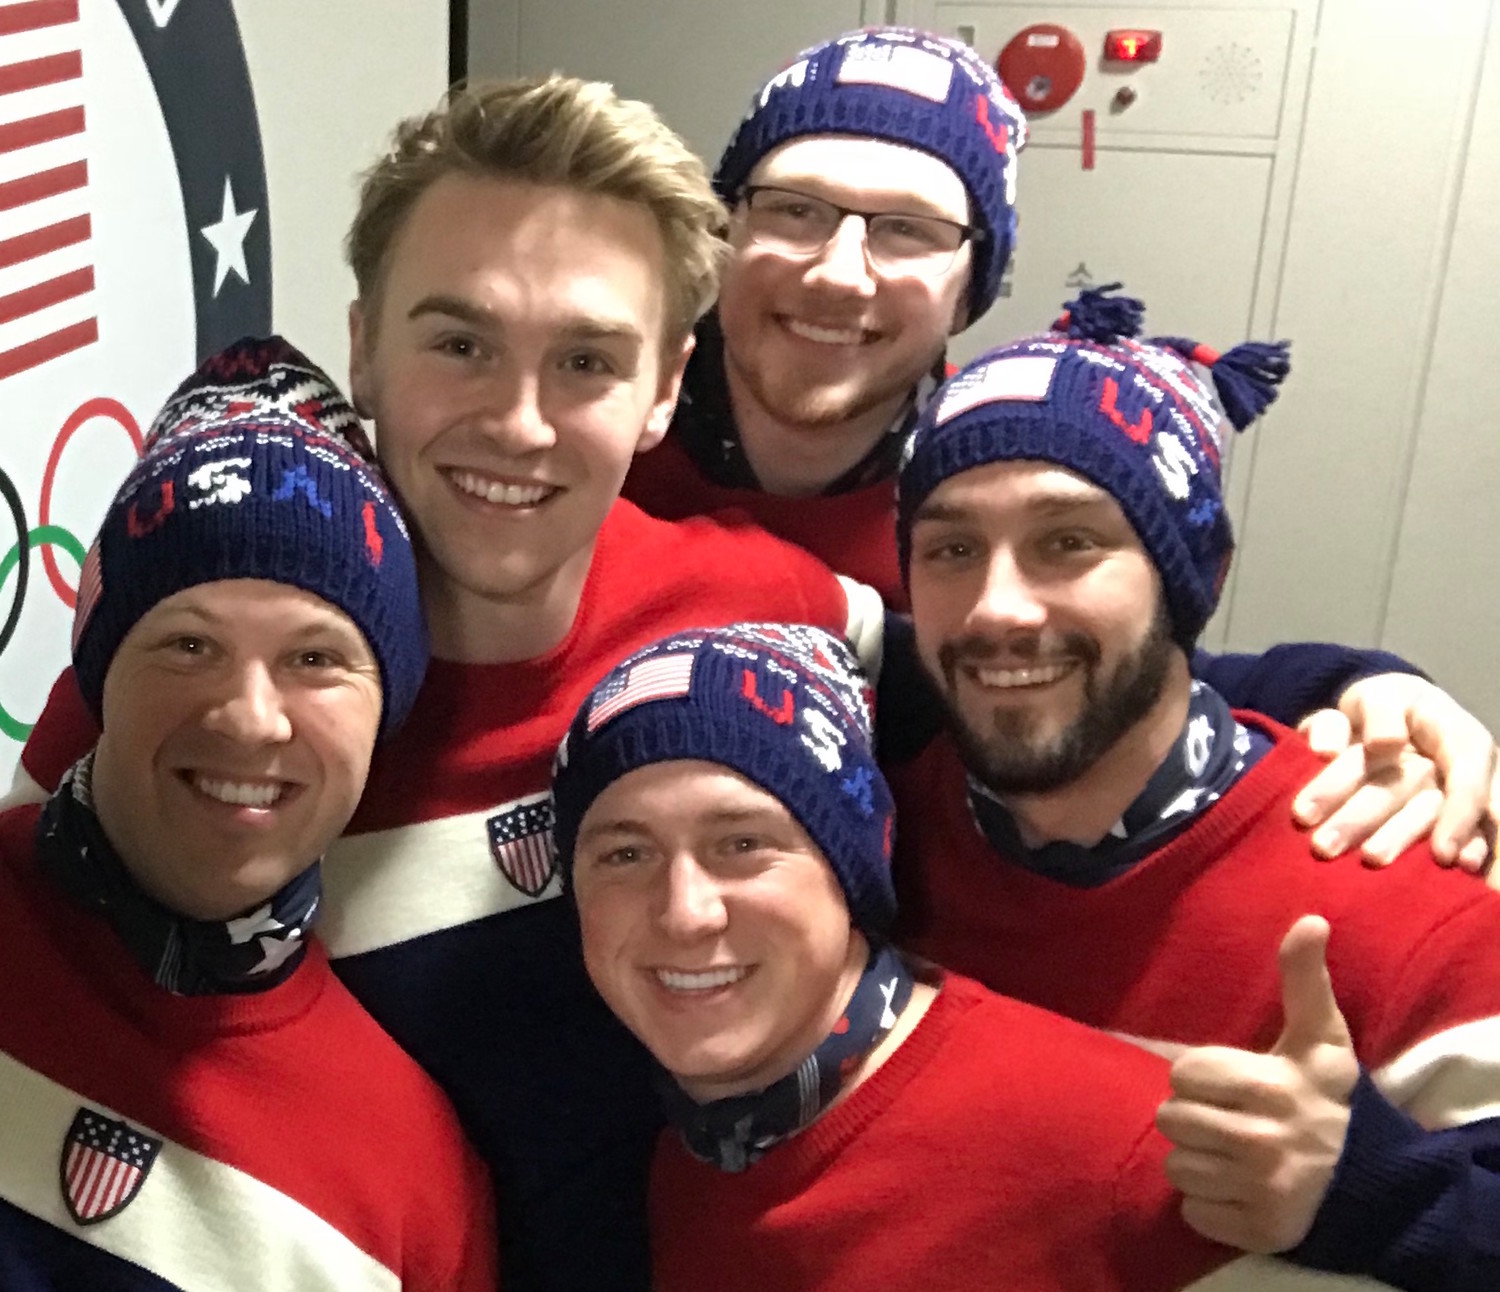 Mat Mortensen, bottom left, a St. Dom alum, took a selfie with some of his teammates at the Winter Olympics.